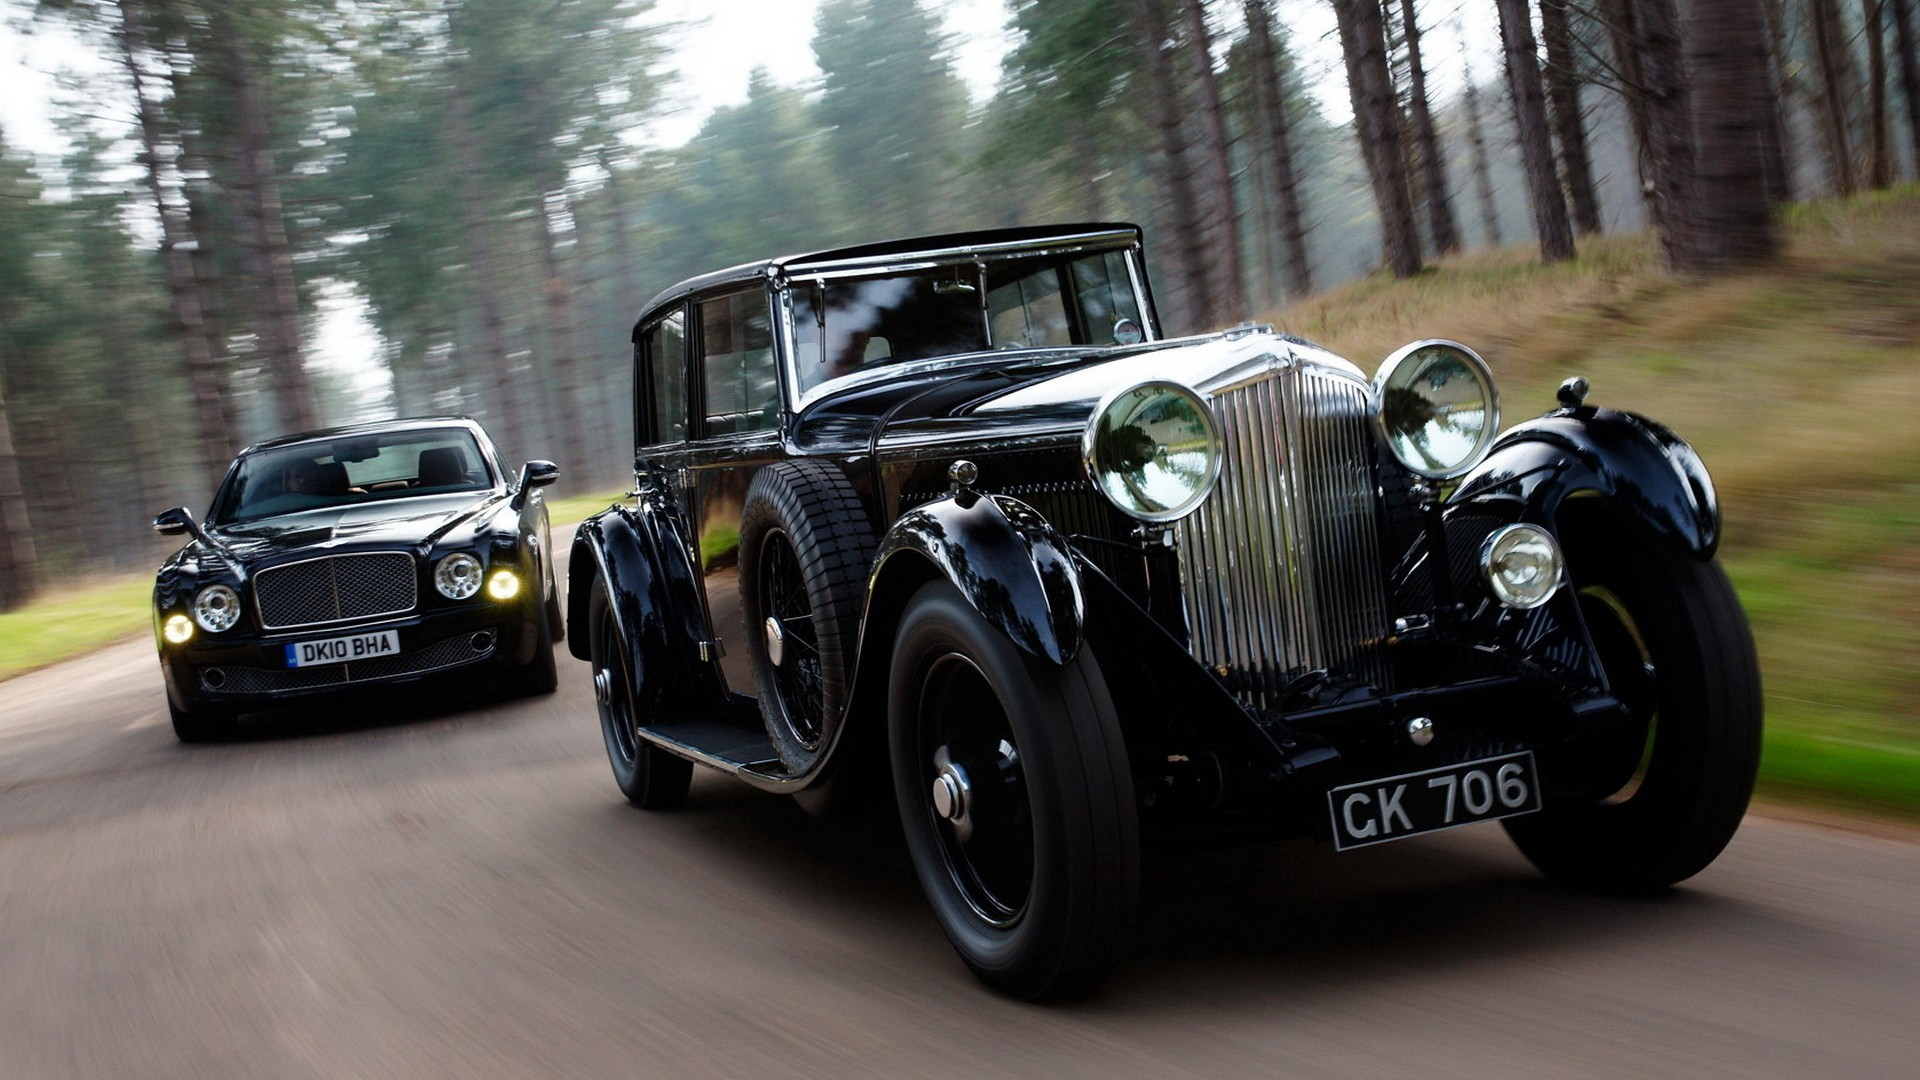 Bentley 8-litre photo - 3